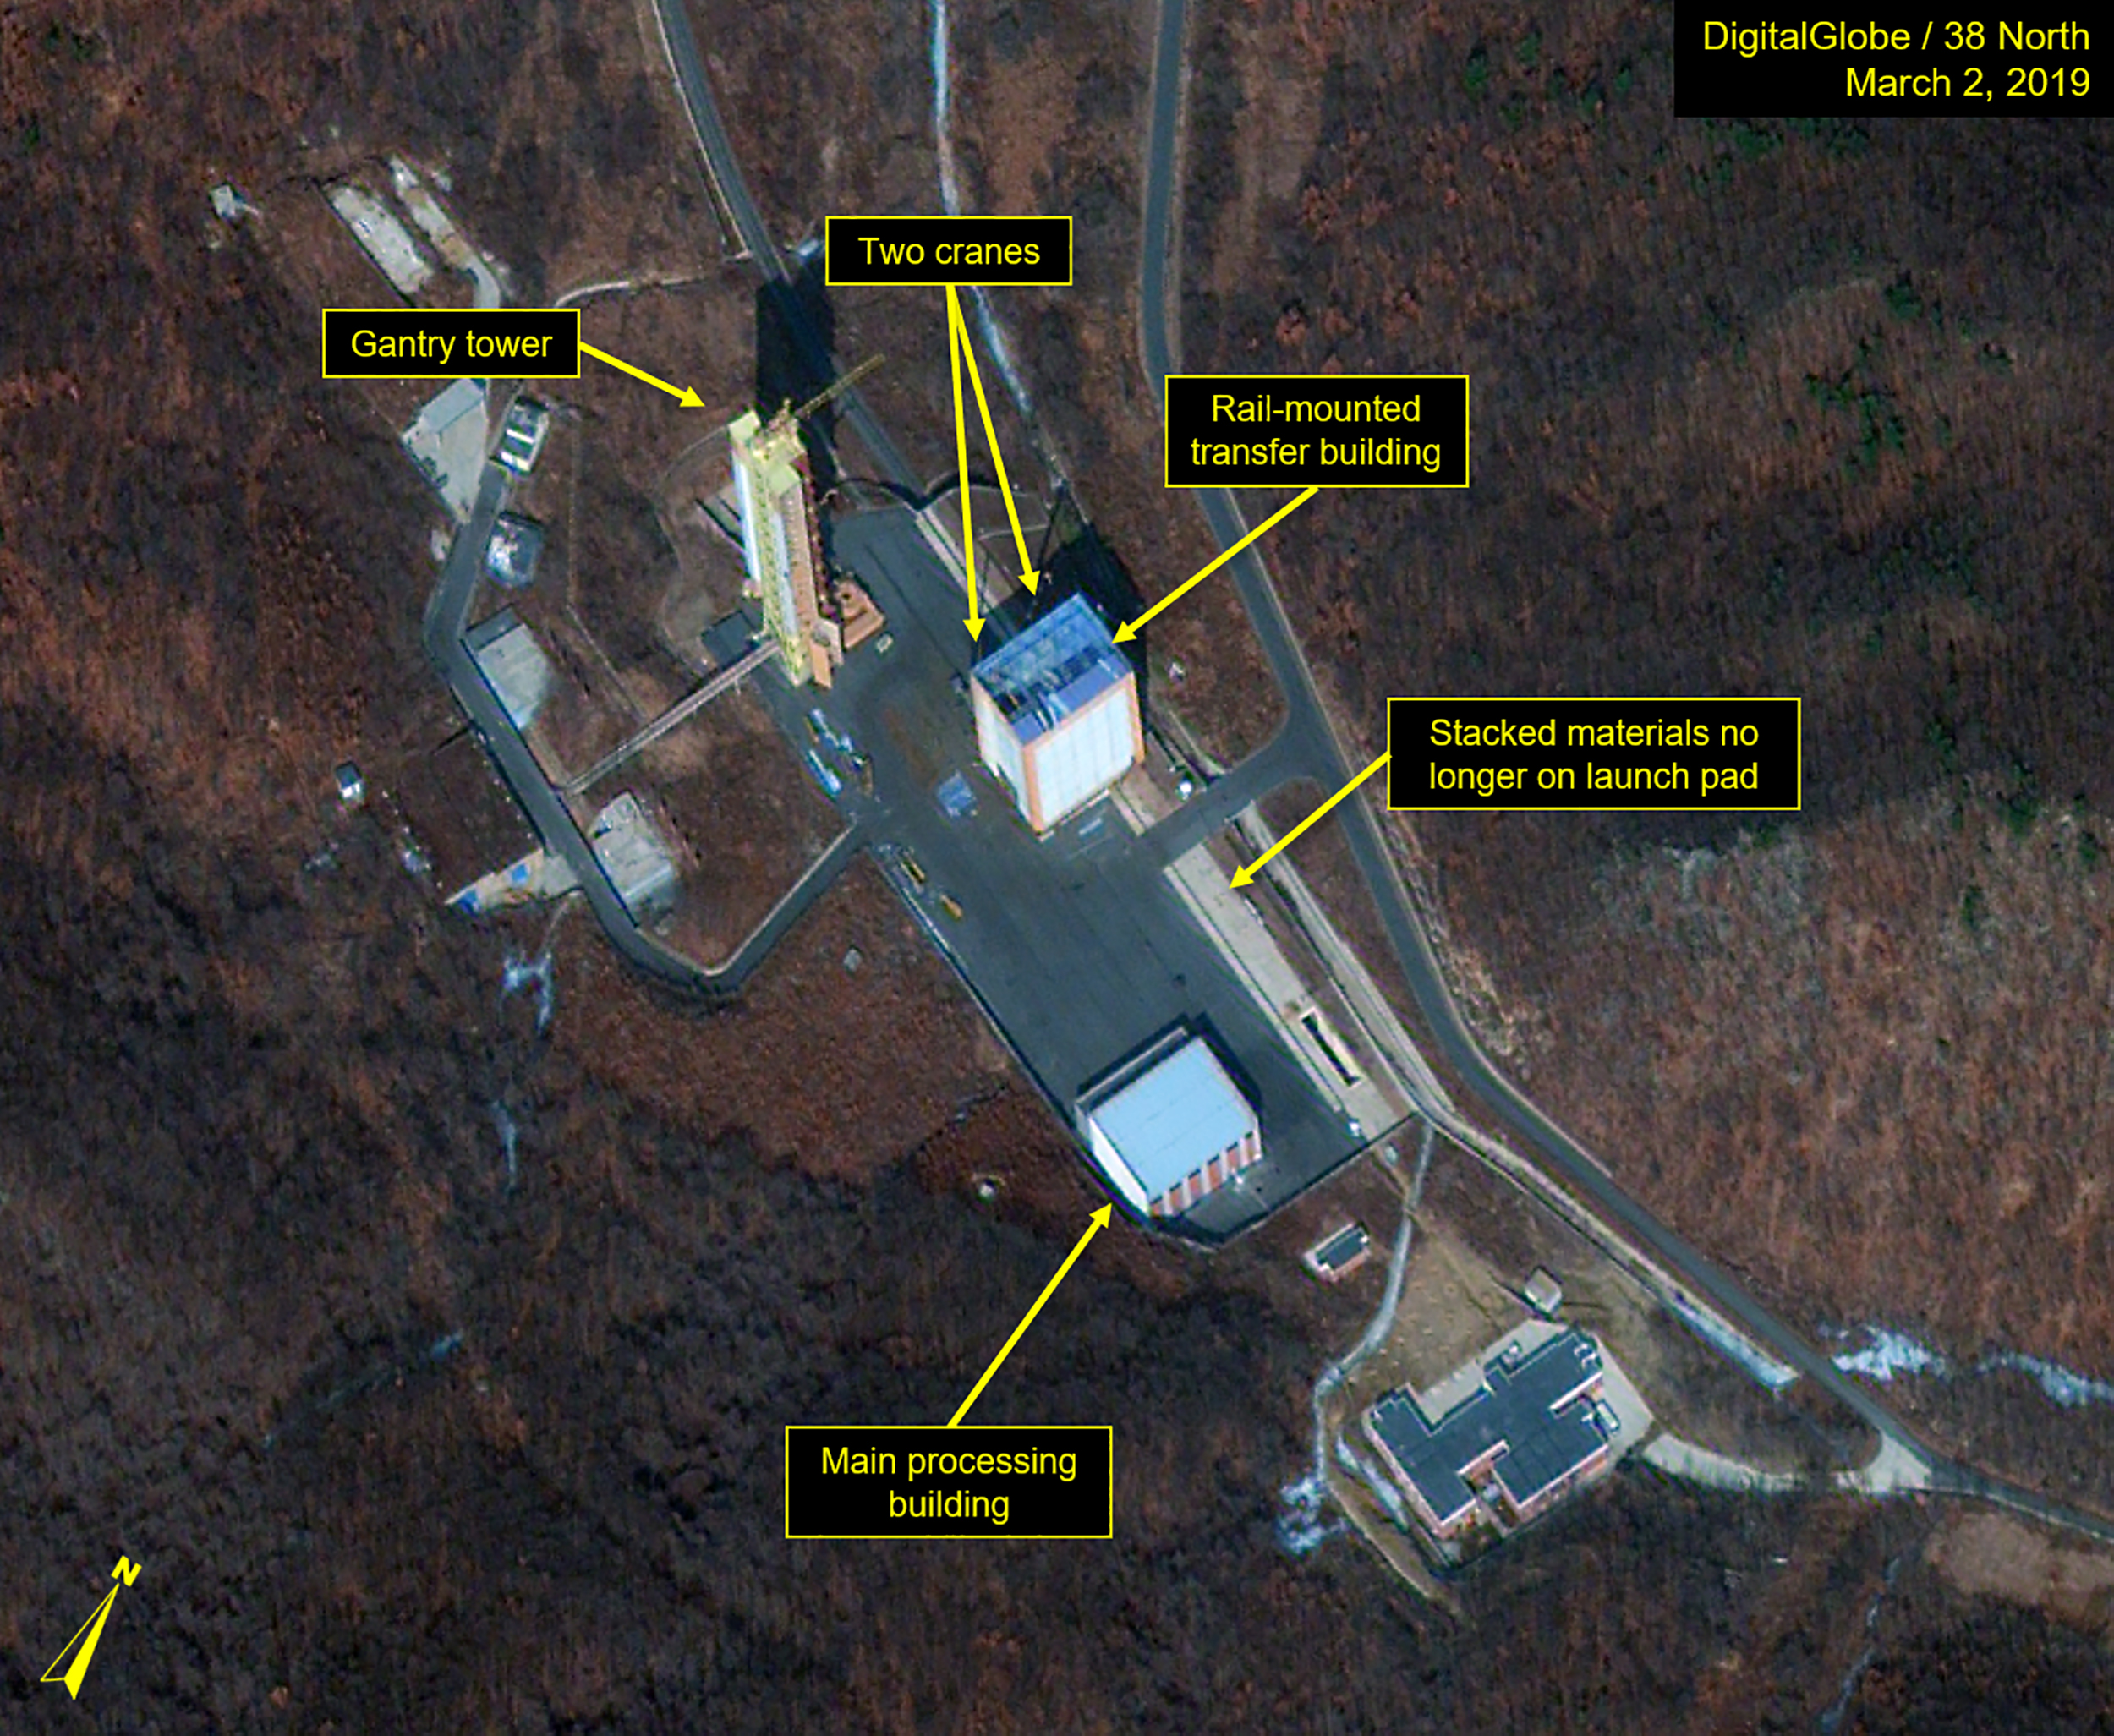 SOHAE SATELLITE LAUNCH PAD, NORTH KOREA - MARCH 2, 2018: Figure 1. Rail-mounted transfer building is being rebuilt.